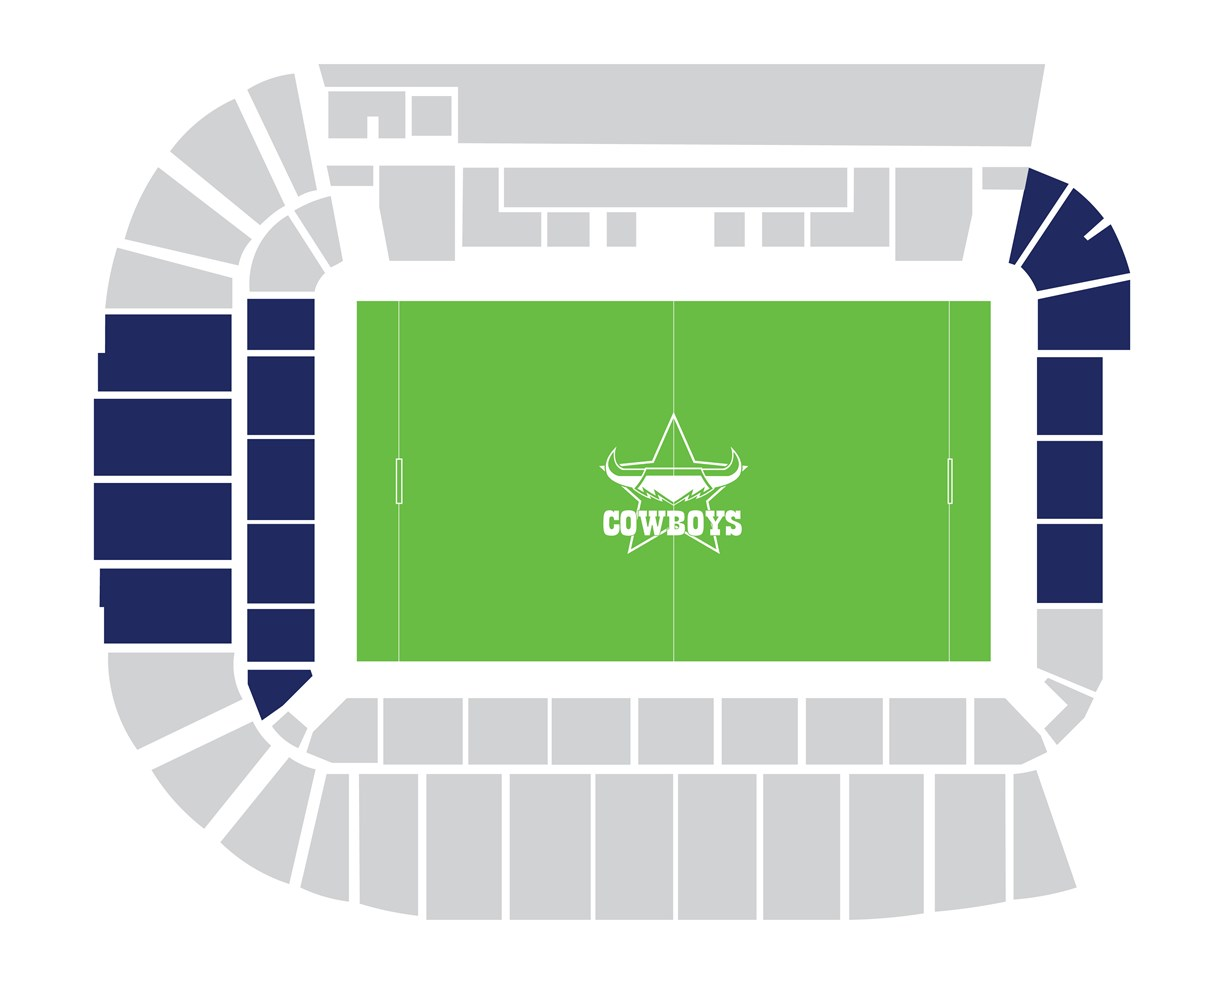 Tier 1: Northern Corner Seats, Northern Lower Seats & Southern Grandstand Seats